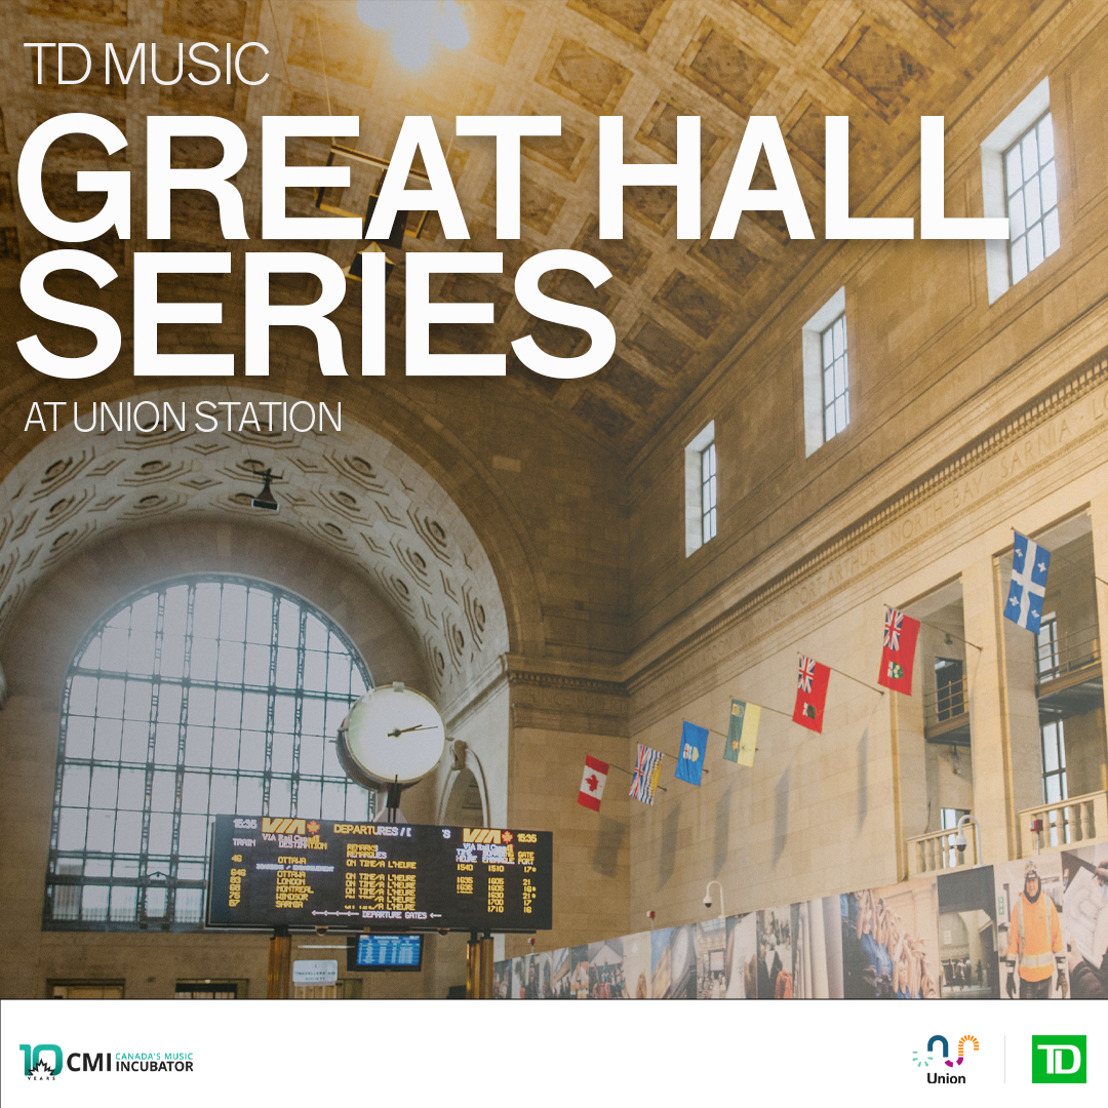 TD Music Great Hall Series Launches At Union Station